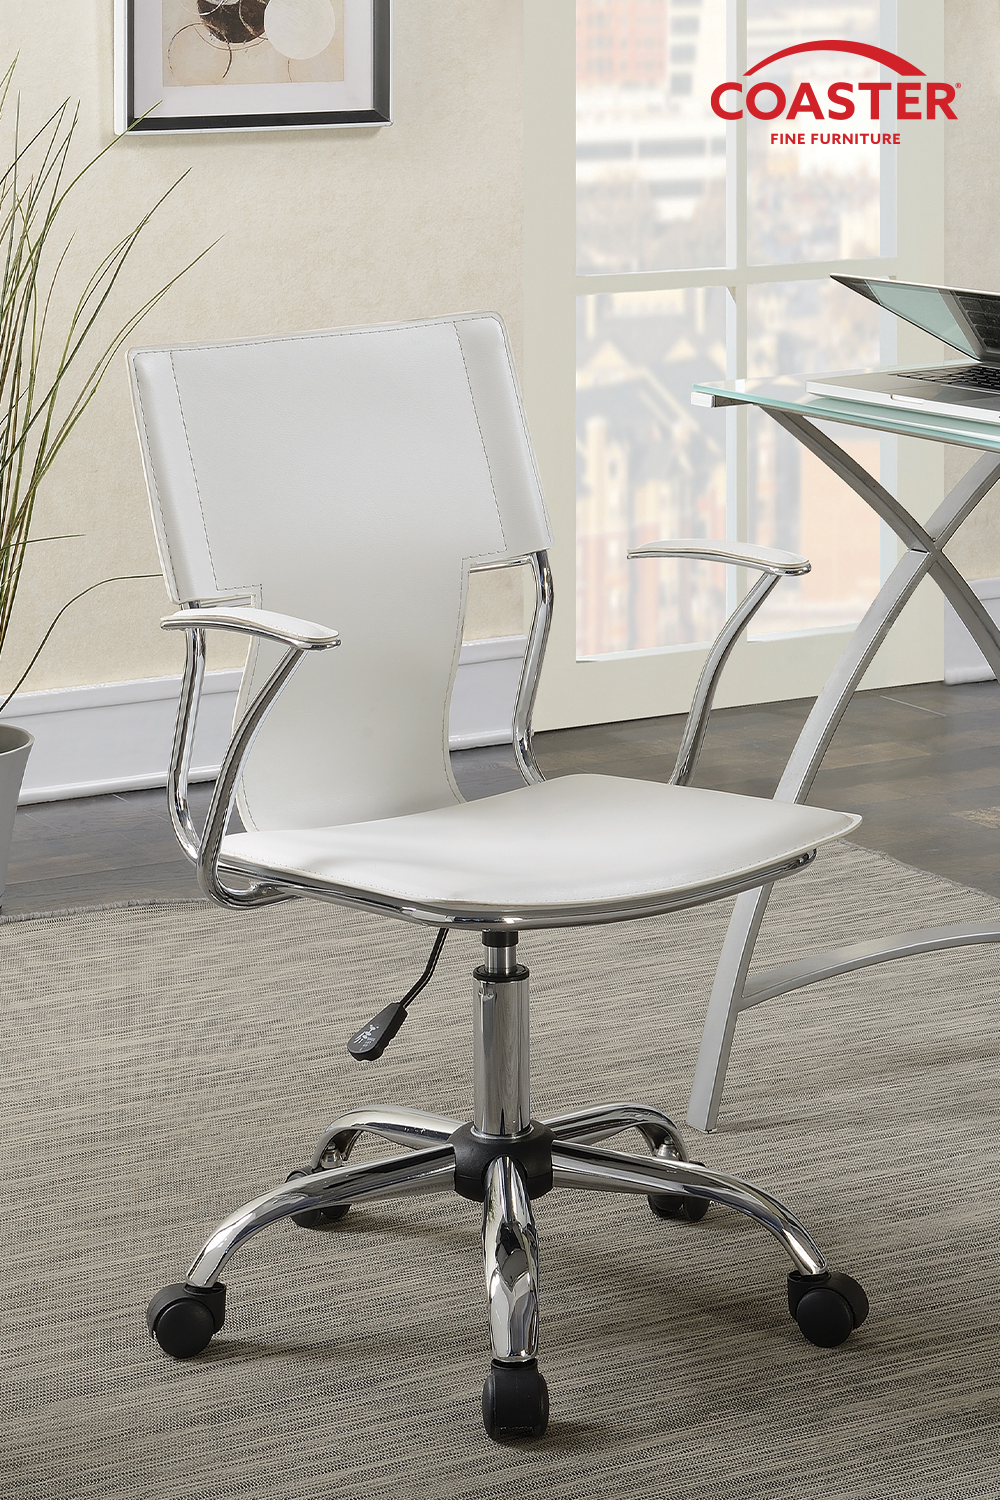 Modern White Adjustable Office Chair In 2020 White Office Chair Adjustable Office Chair Coaster Fine Furniture